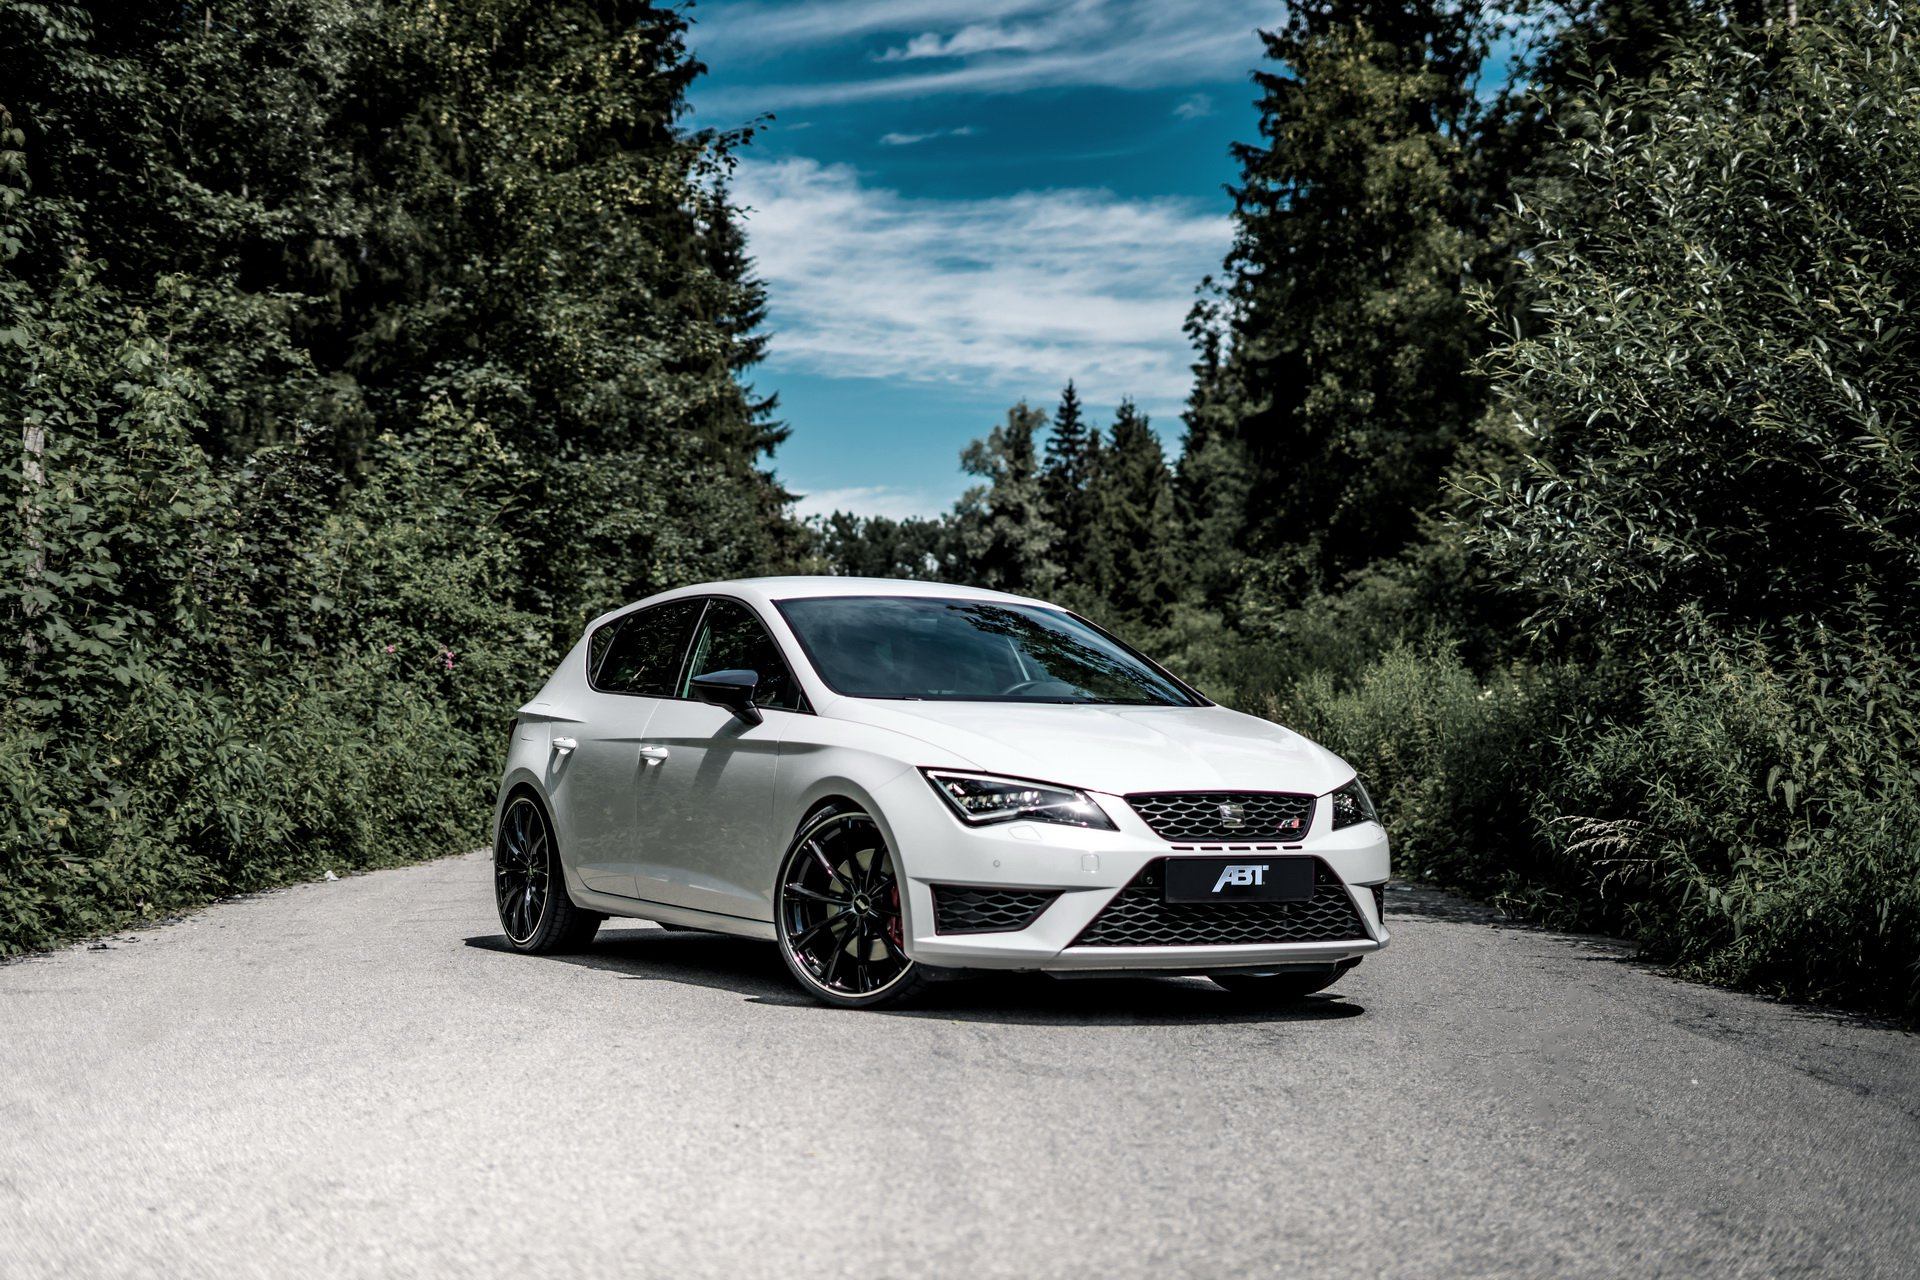 Seat Leon Cupra by ABT (7)